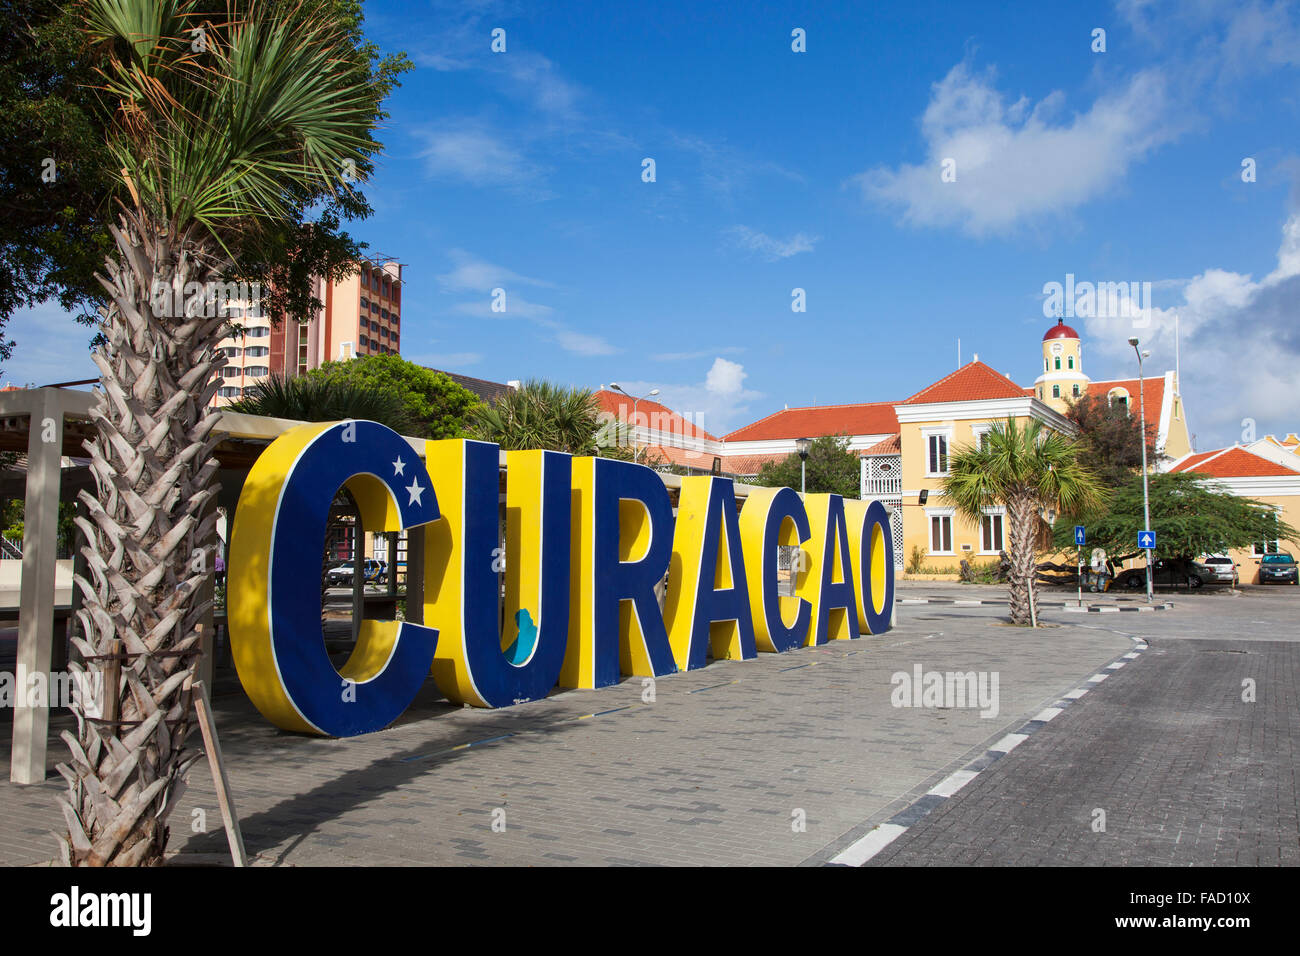 A Big Curacao Sign in the Center of Willemstad, Curacao Island - Stock Image